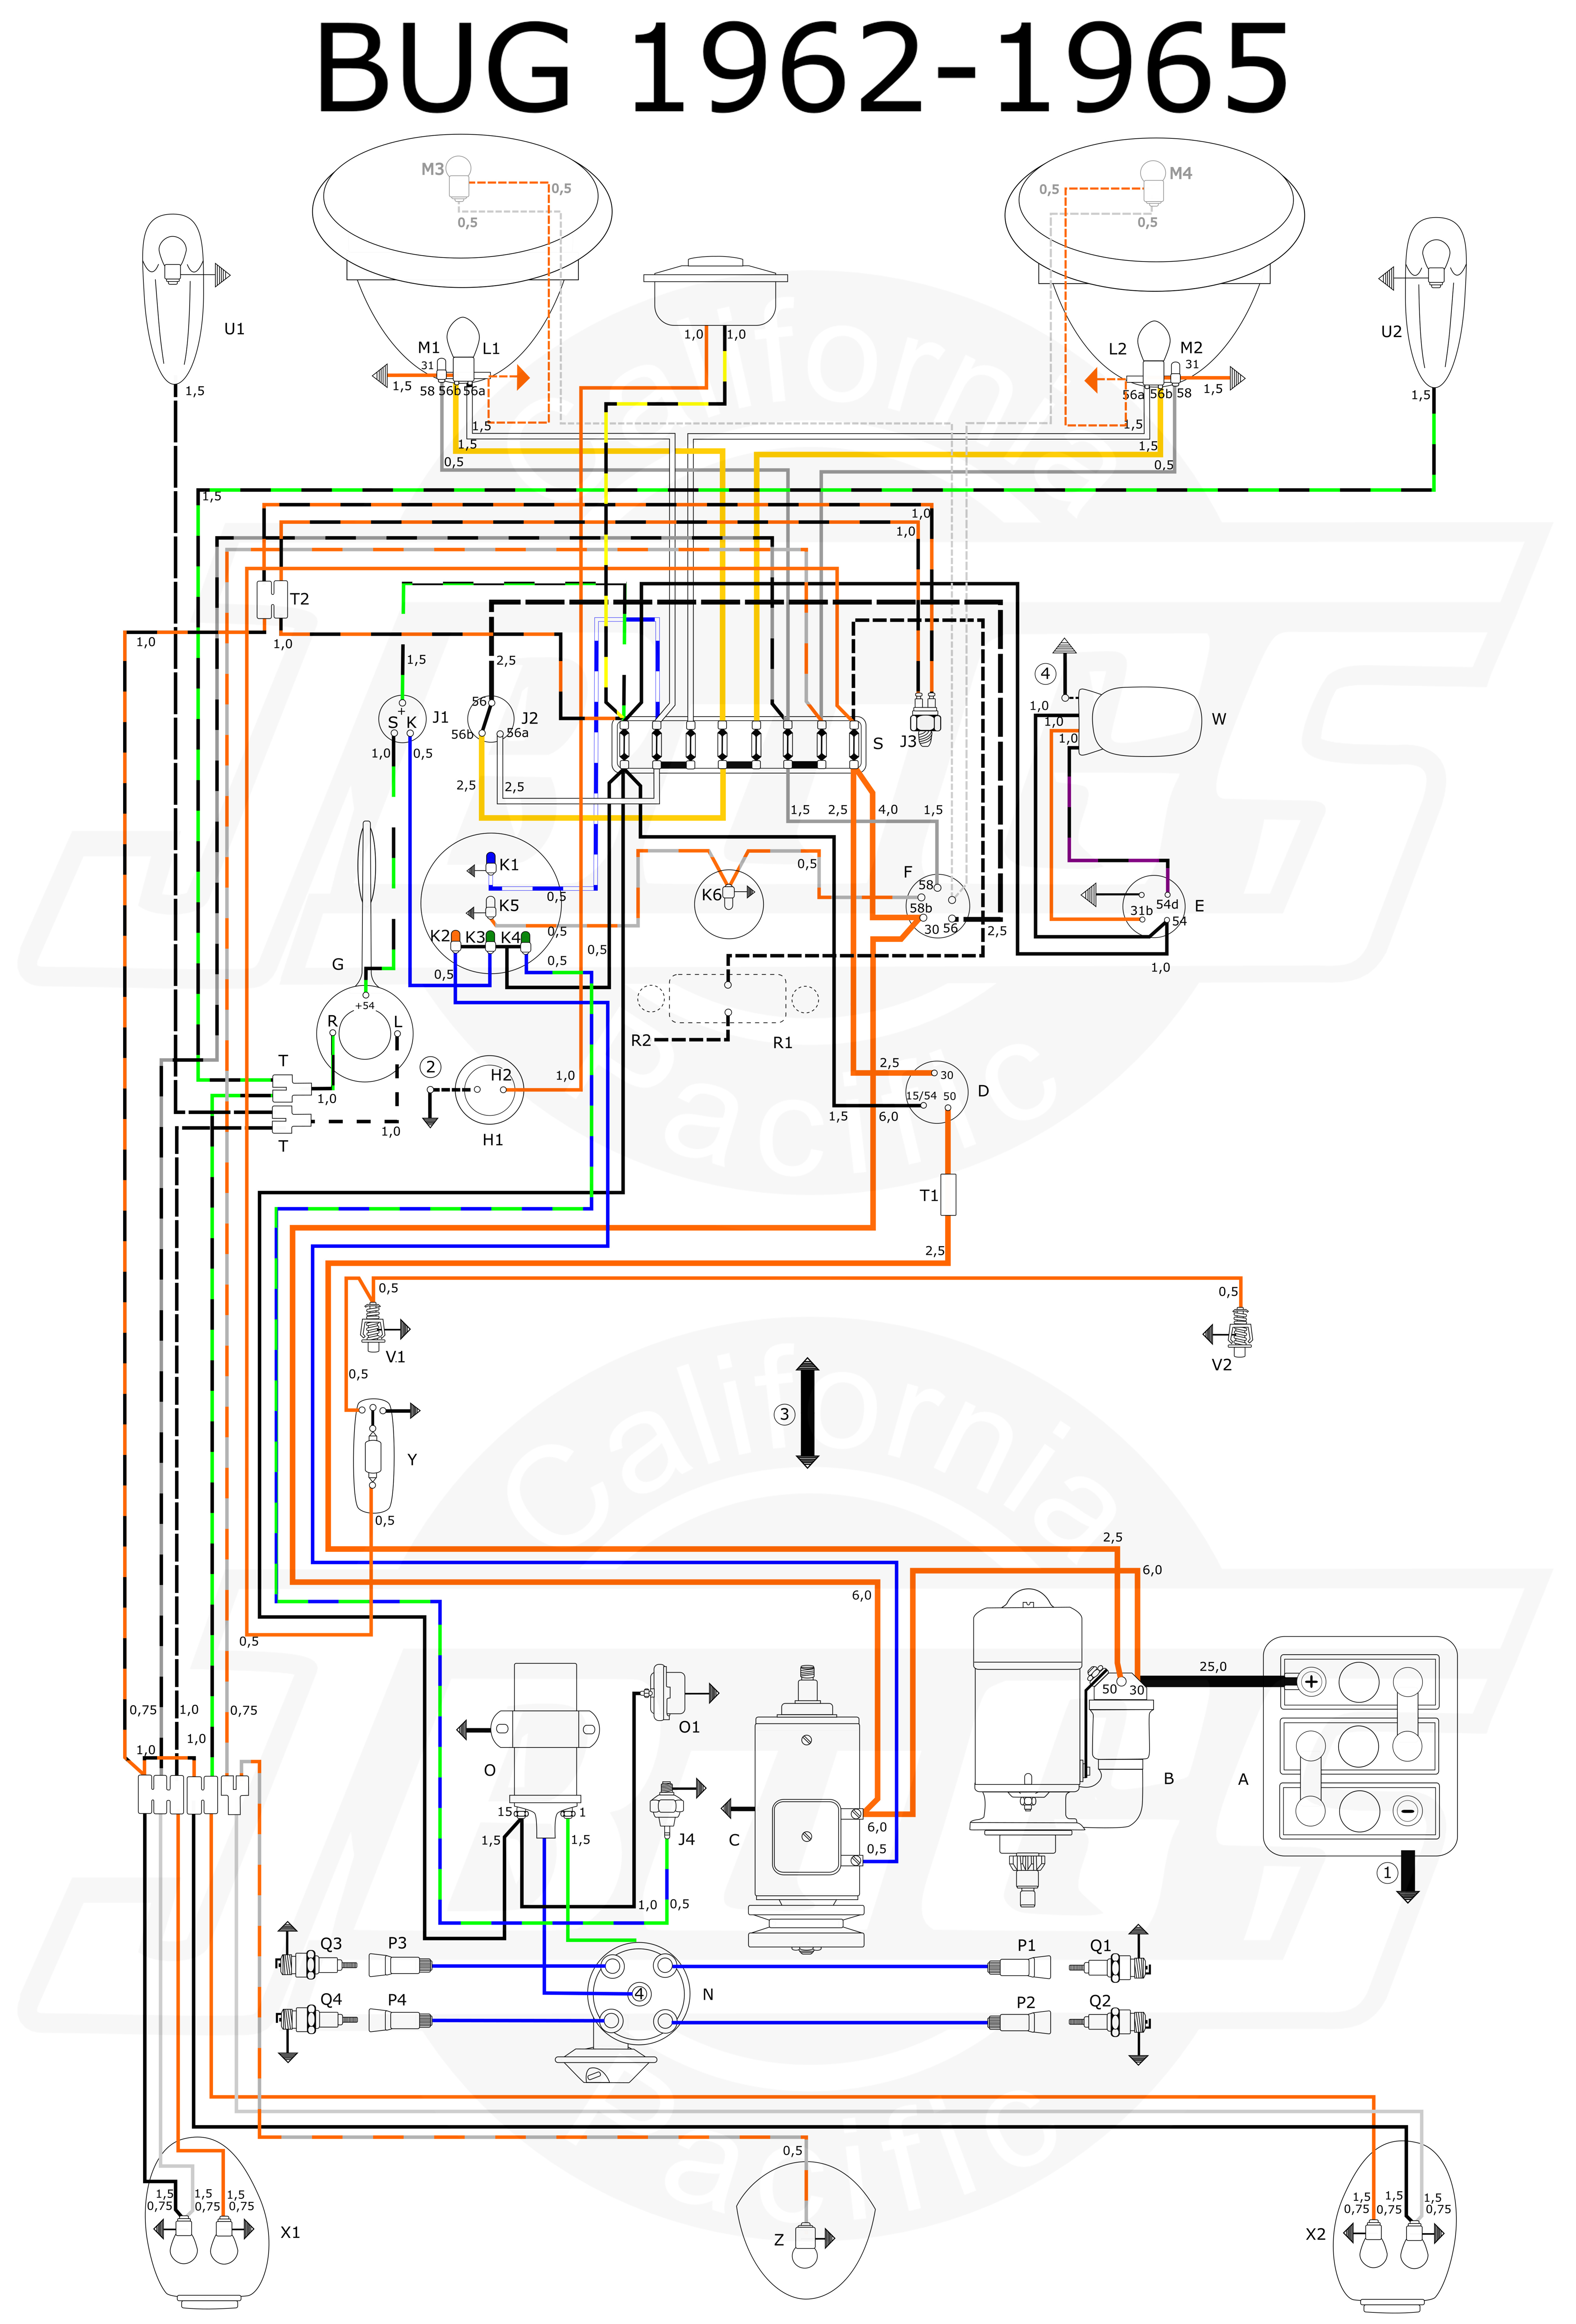 small resolution of fuse box 98 buick regal wiring library 1982 buick regal wiring diagram wiring diagram for 1993 buick regal